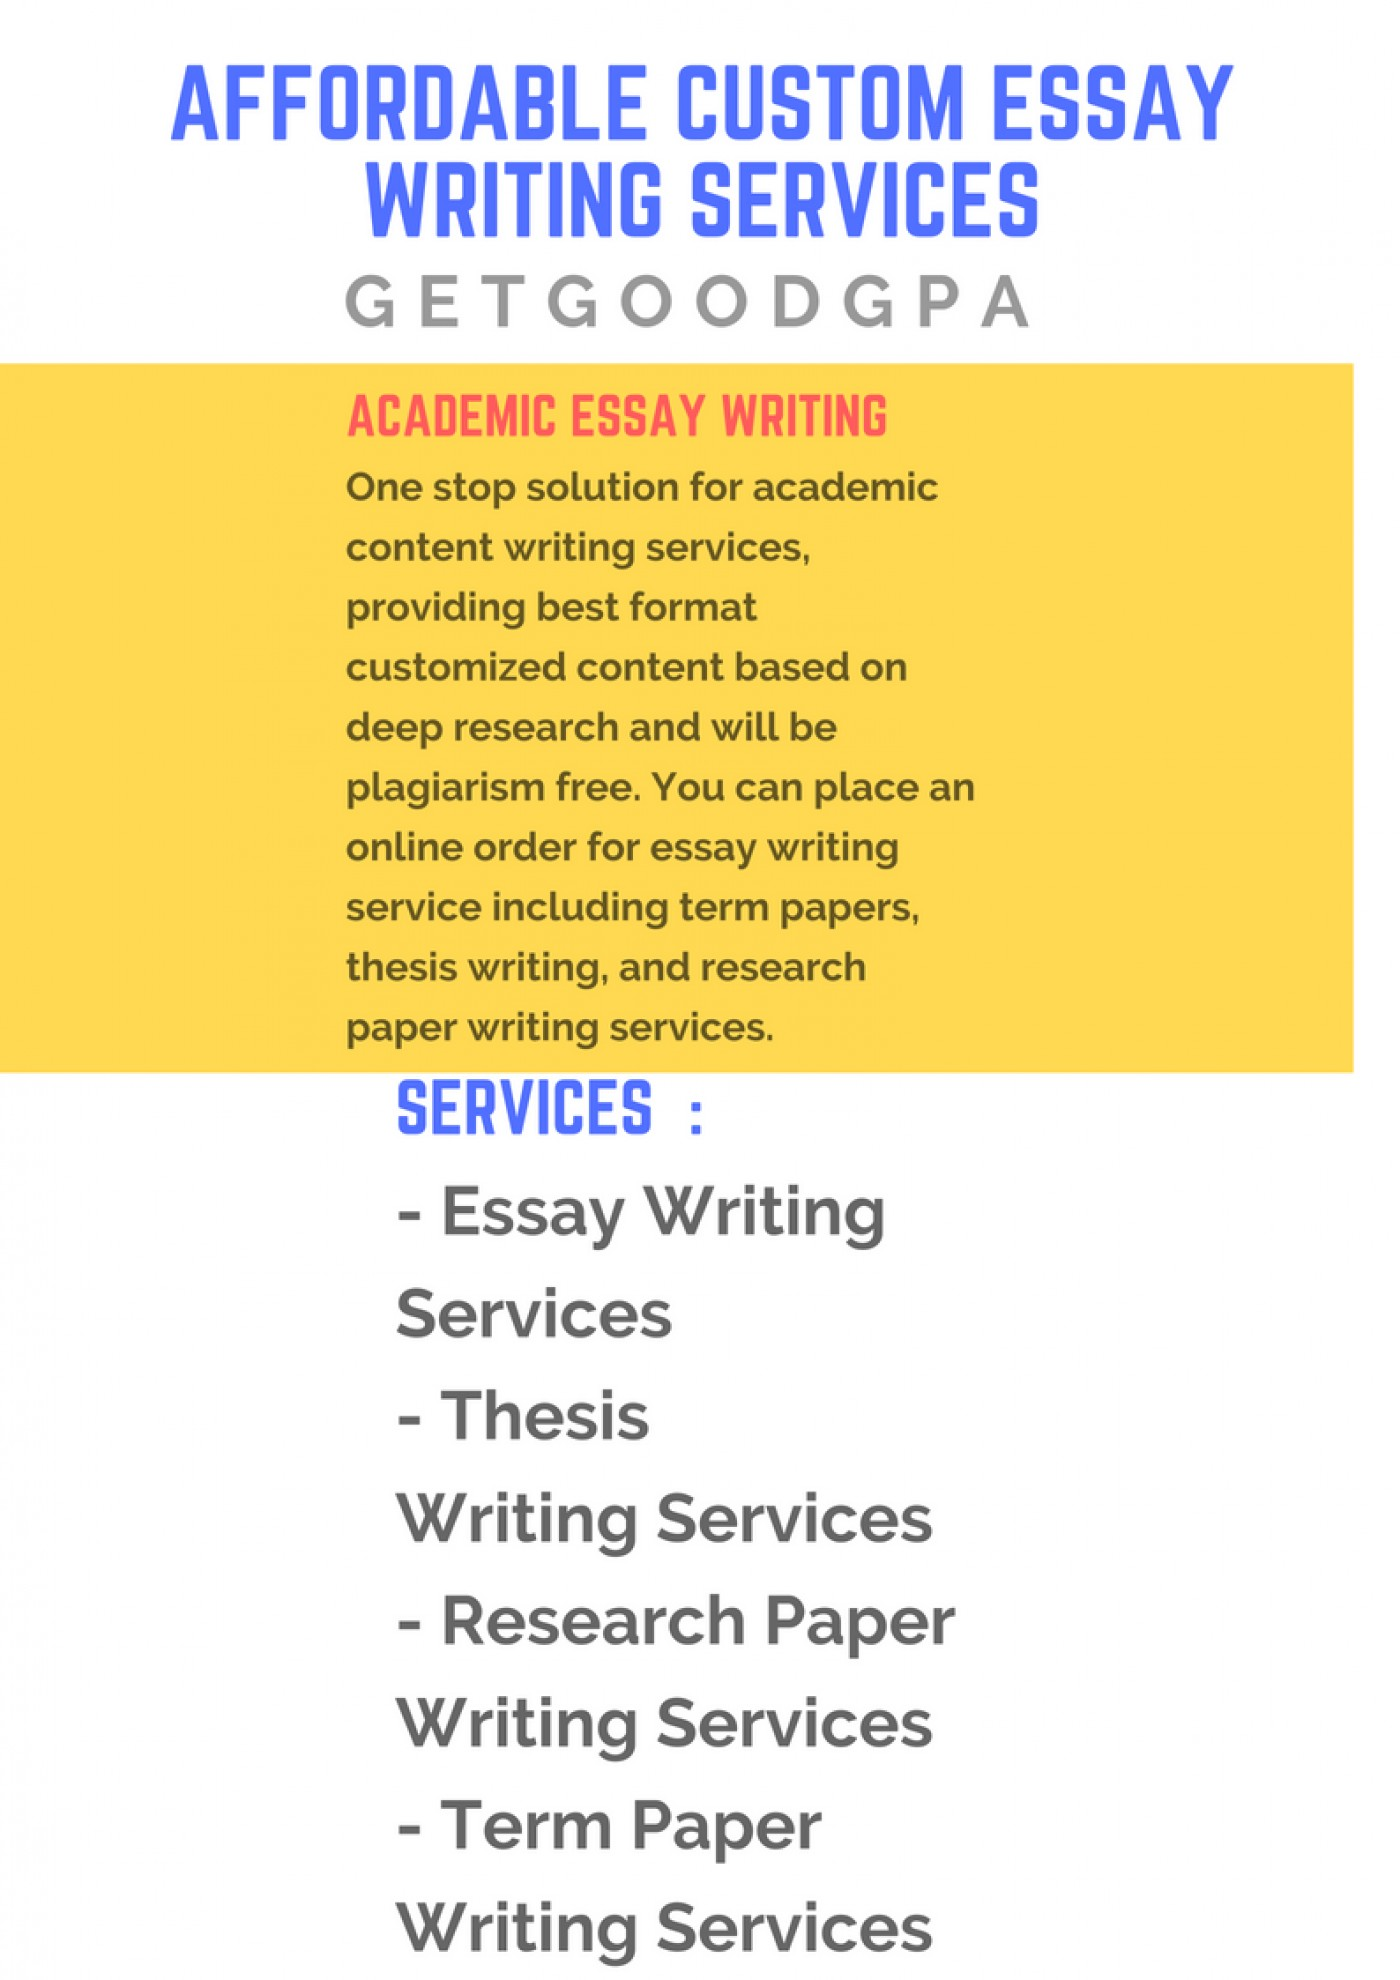 002 Research Paper Writing Services Archaicawful In Pakistan Mumbai Academic India 1400